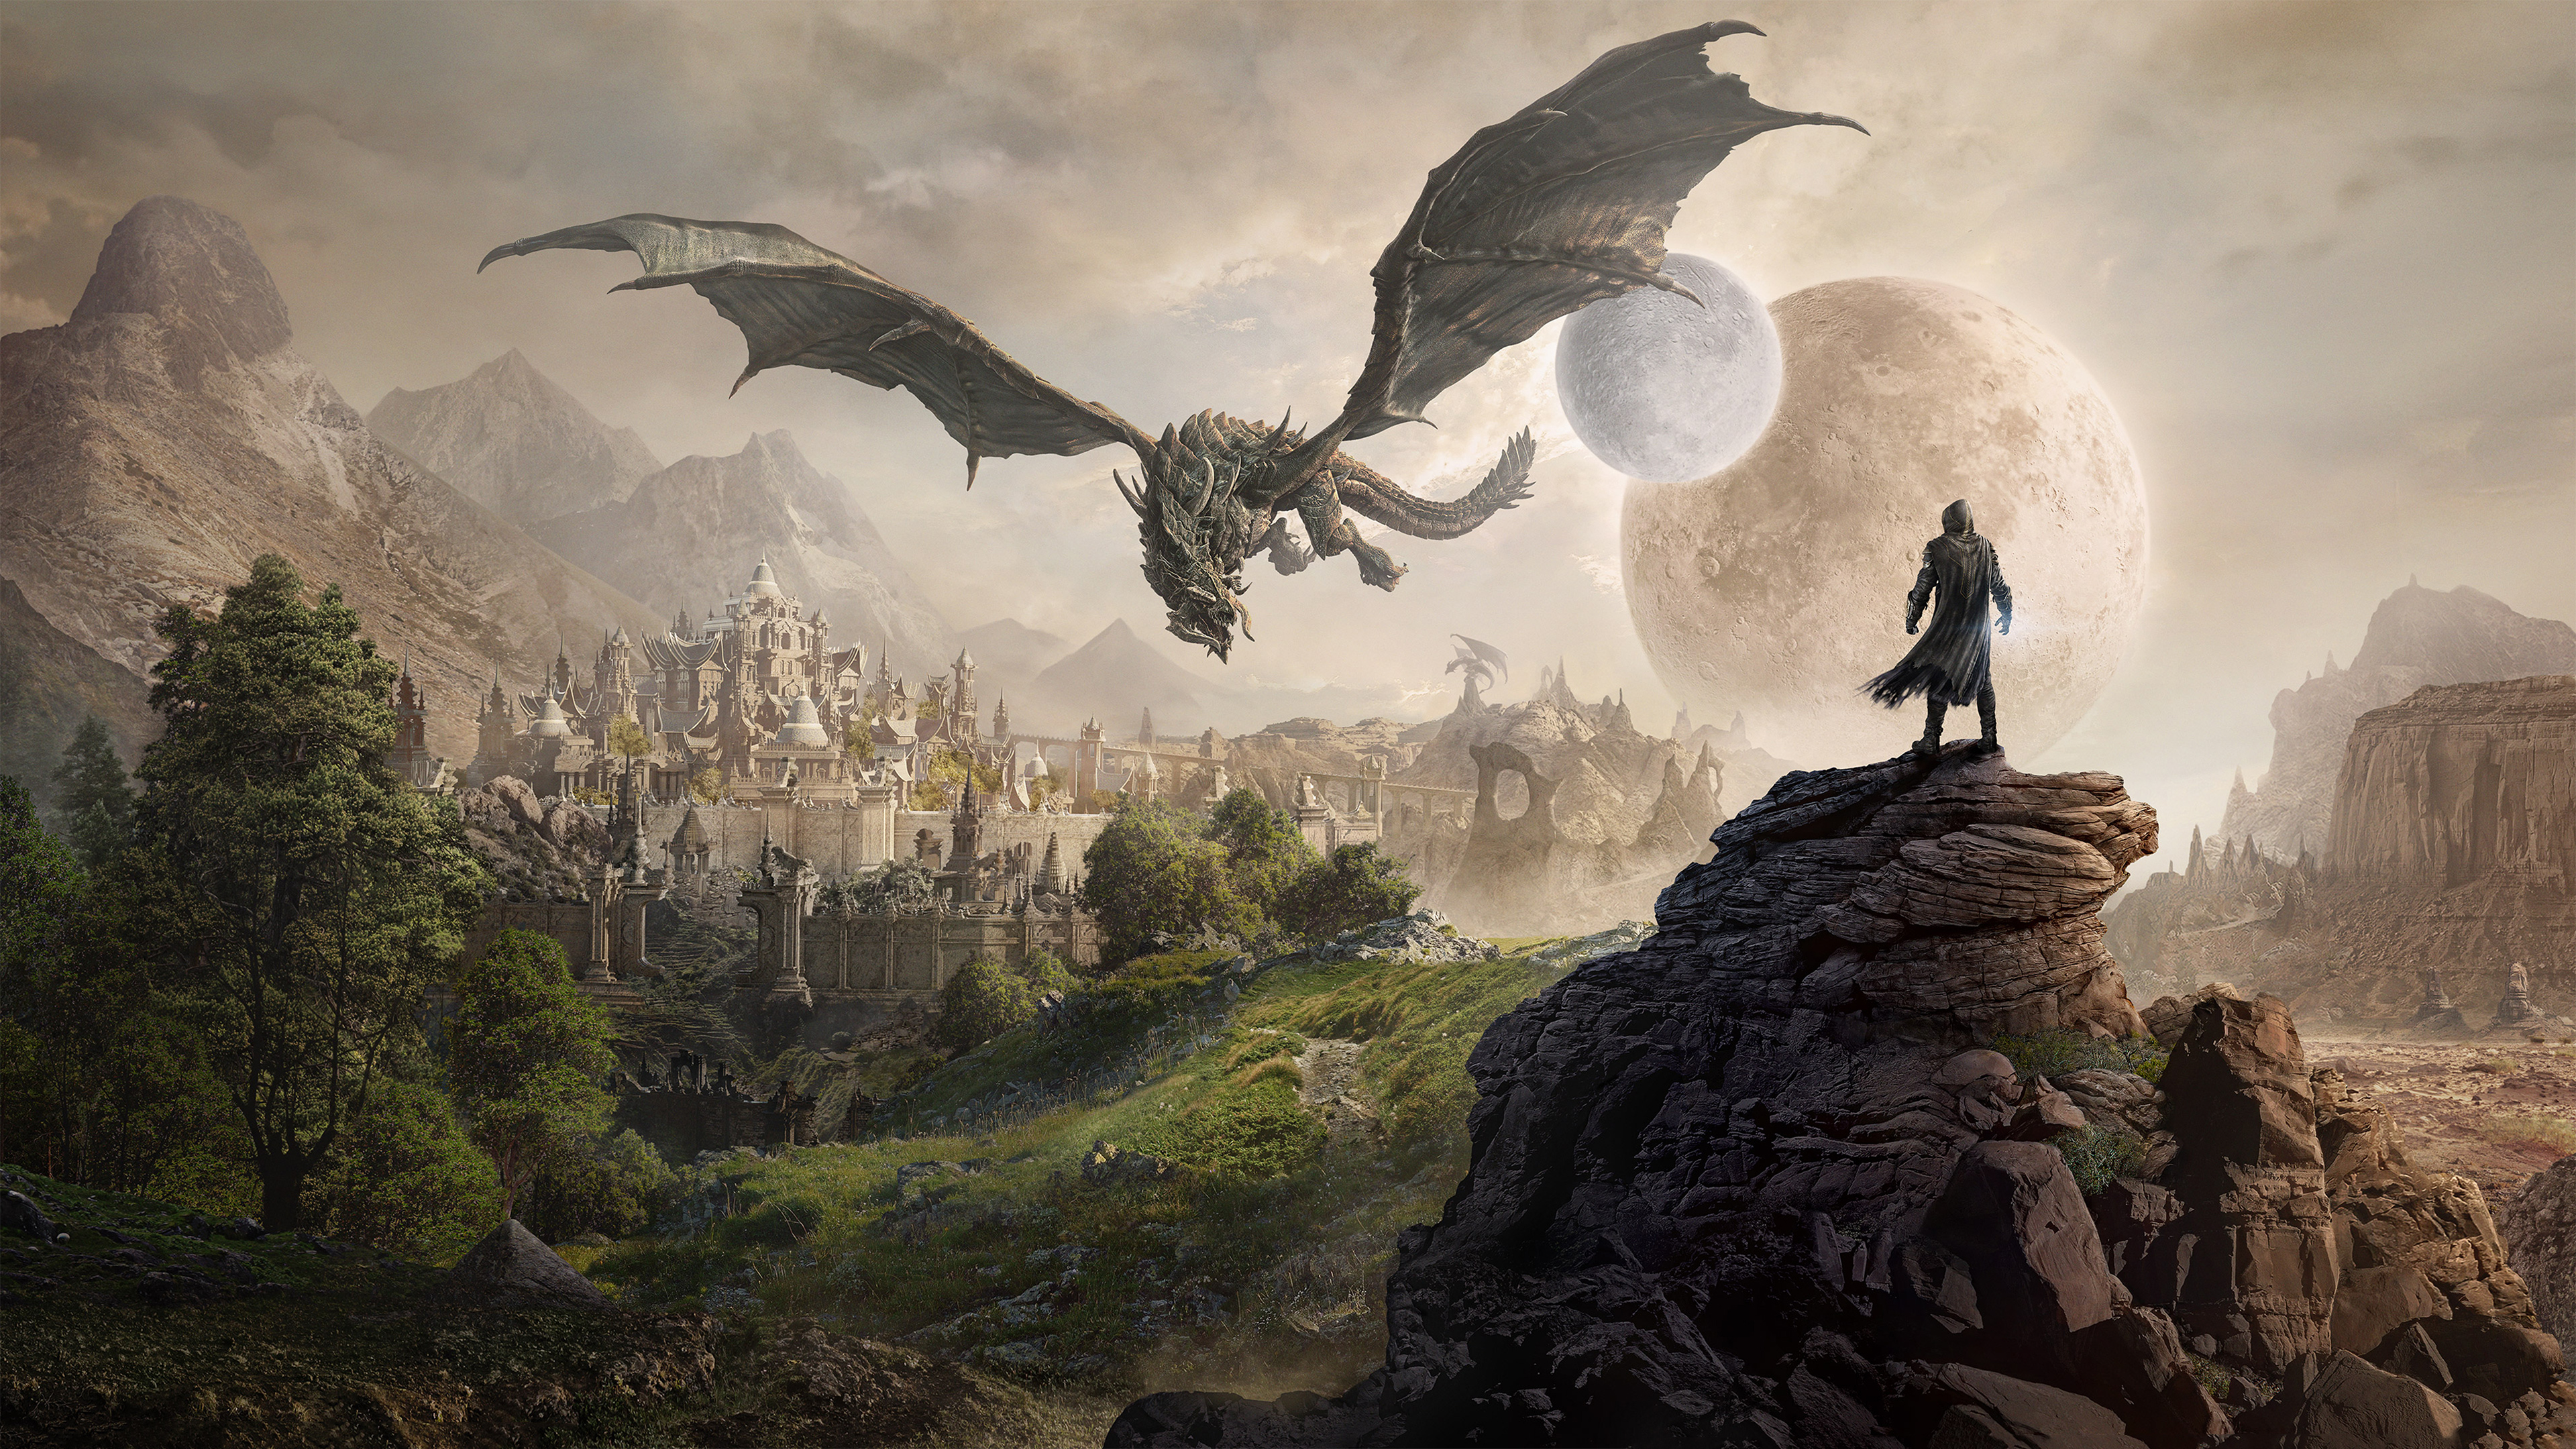 Elsweyr The Elder Scrolls Online 2019 4k Hd Games 4k Wallpapers Images Backgrounds Photos And Pictures